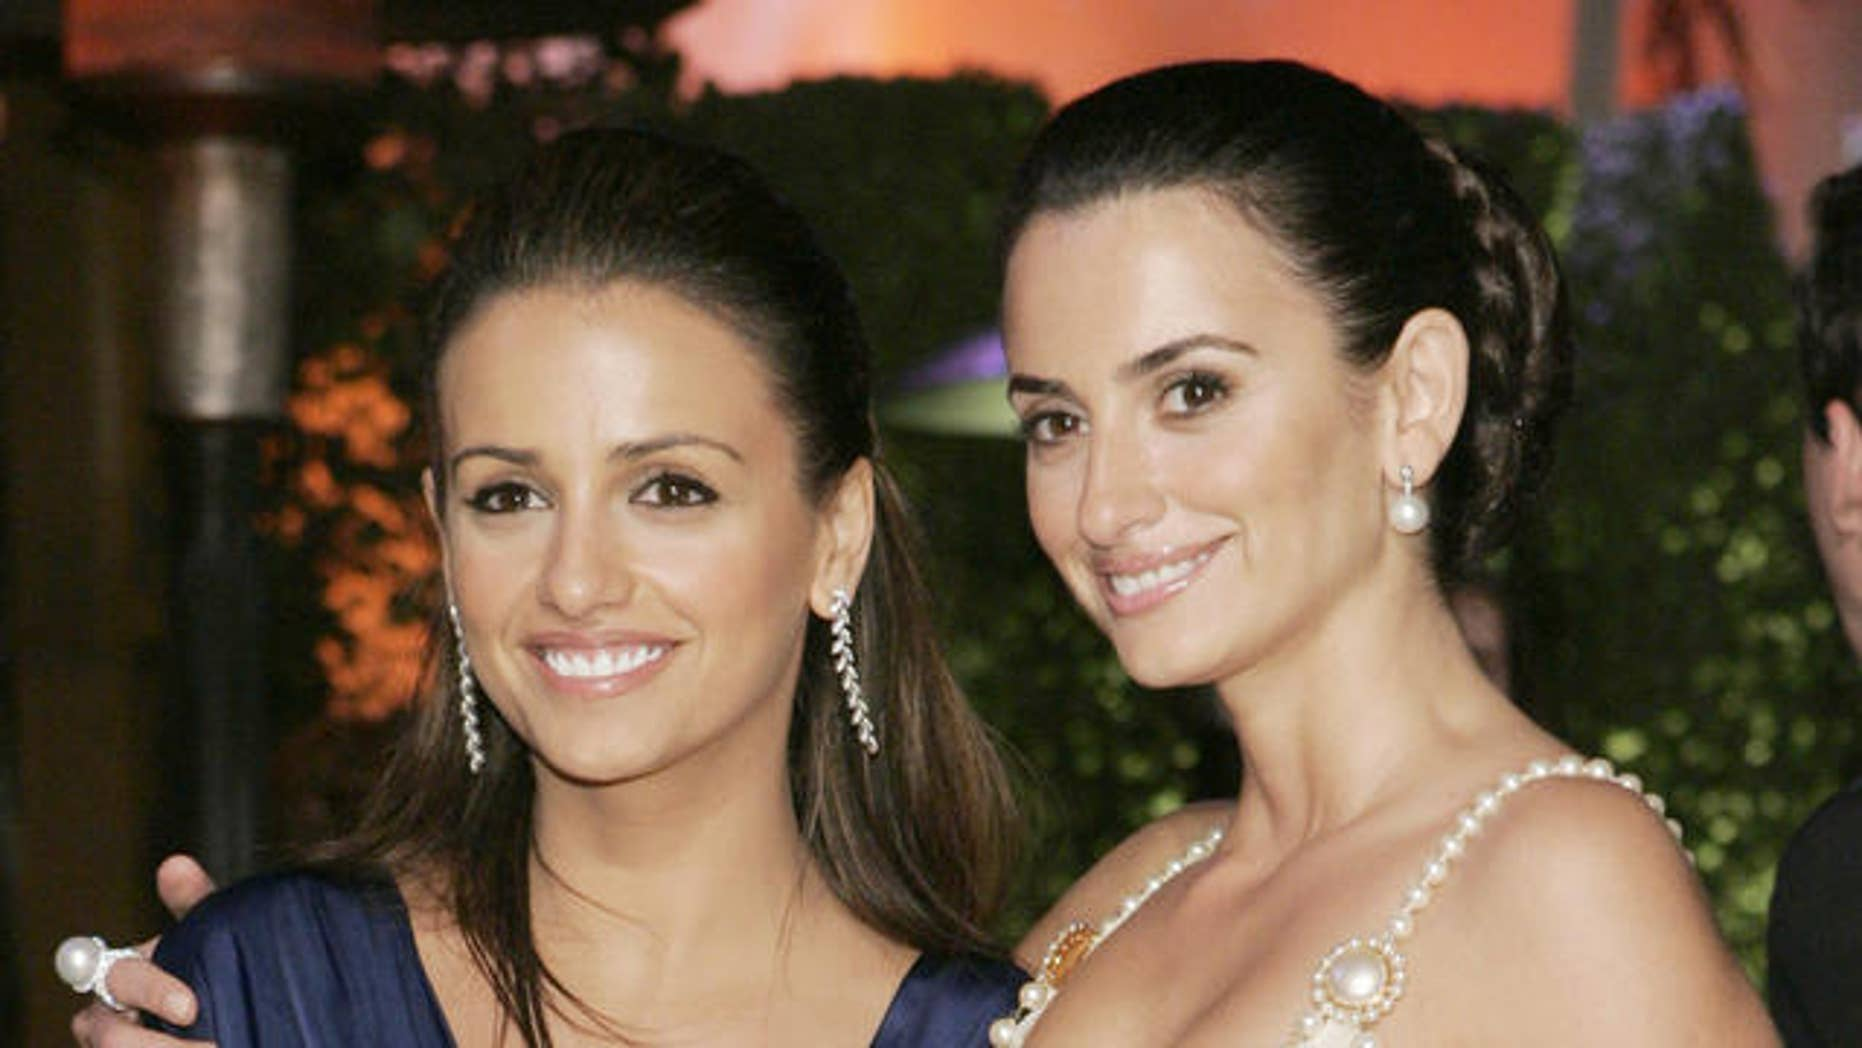 Penelope Cruz and Monica Cruz arrive at the annual Vanity Fair Oscar party at Morton's in West Hollywood, Calif., Sunday, Feb. 25, 2007.  (AP Photo/Danny Moloshok)